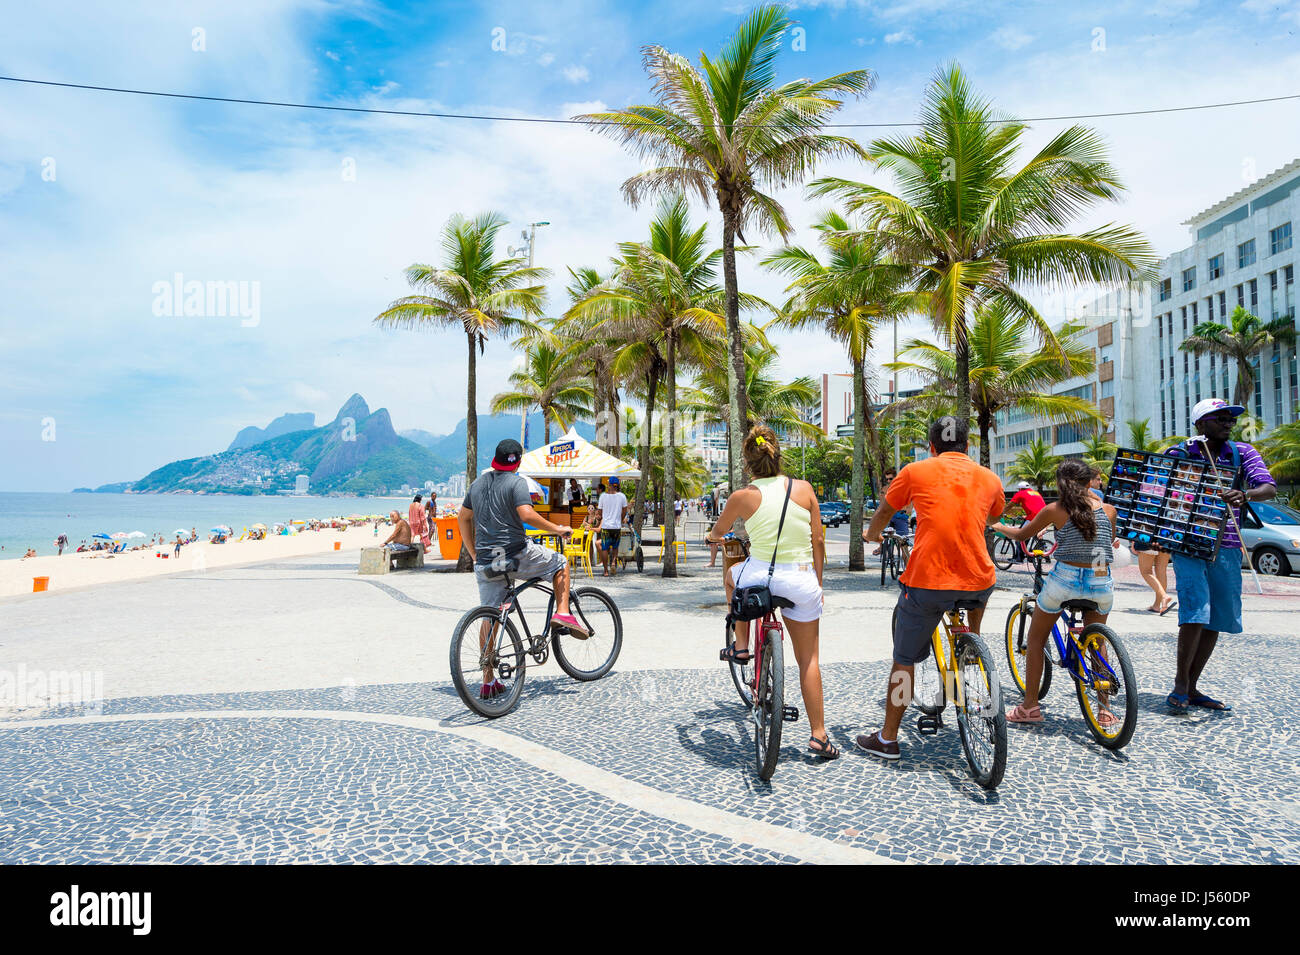 RIO DE JANEIRO - FEBRUARY 1, 2017: A group of visitors to Ipanema Beach stop their bikes on the boardwalk at Arpoador. - Stock Image